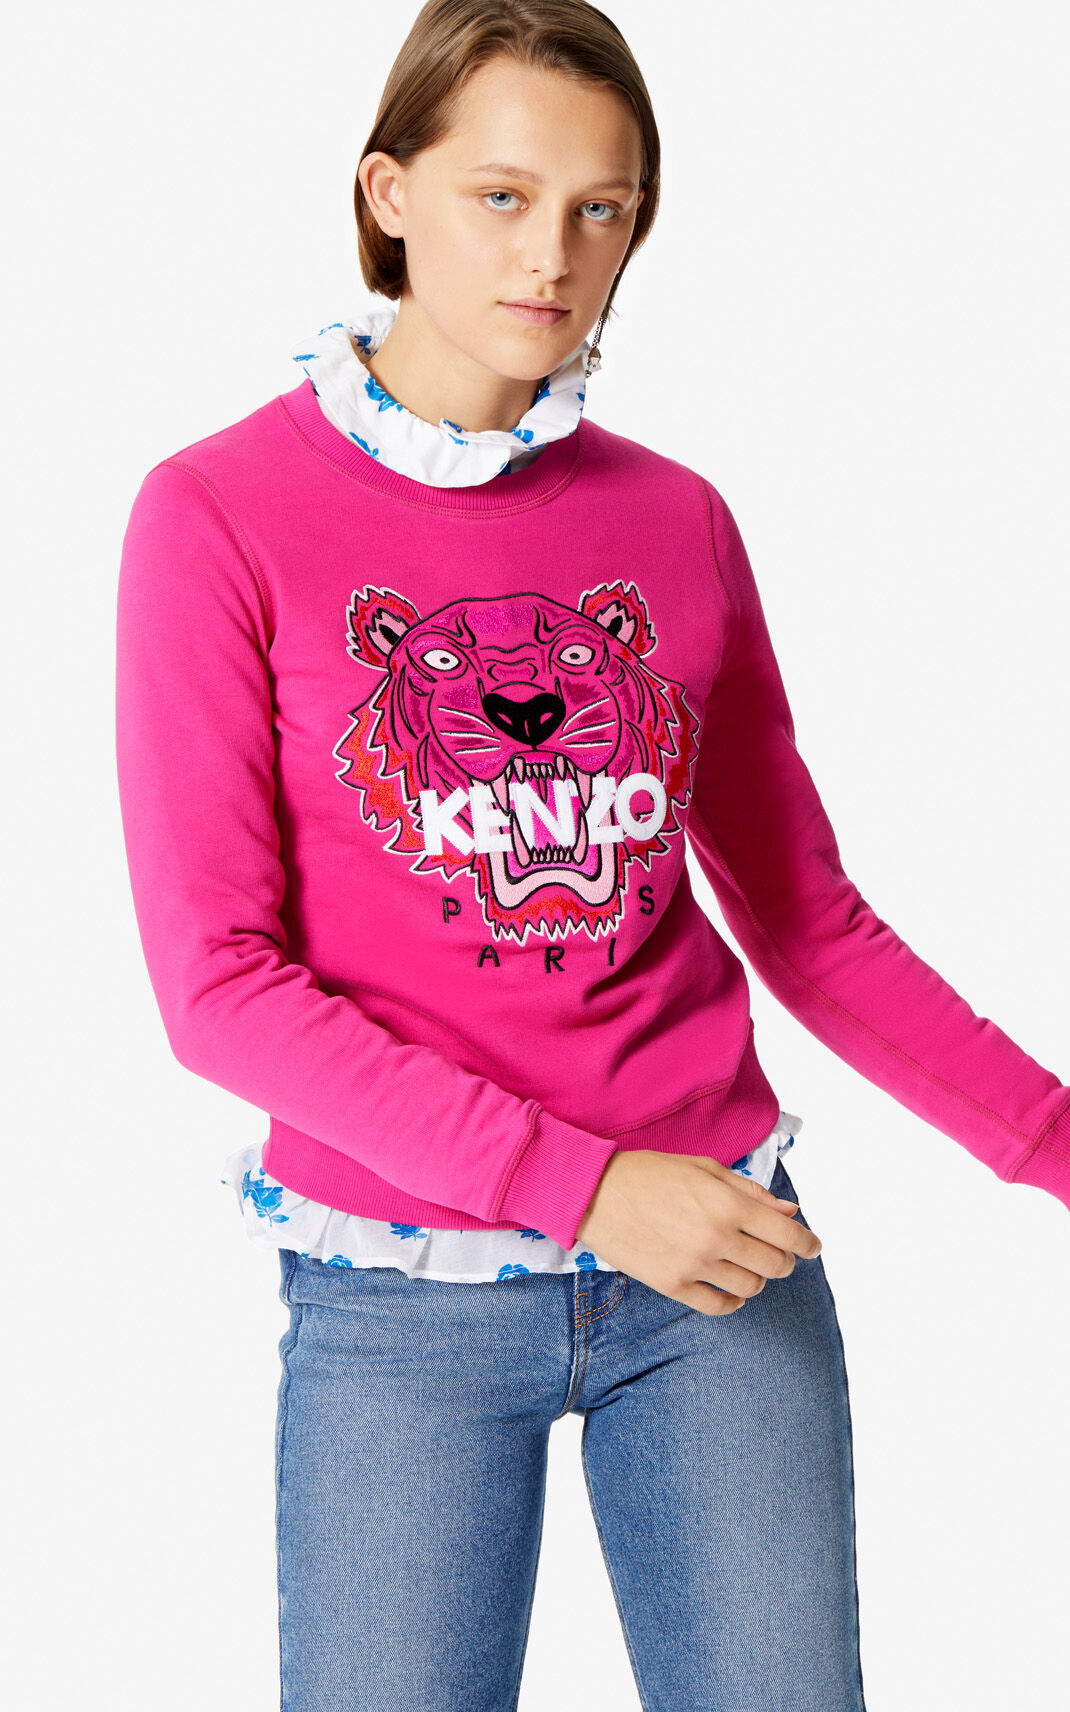 Femme Femme Tigre Sweatshirts Tigre Sweatshirts Tigre Sweatshirts Femme Sweatshirts Tigre Femme OuTkXiwPZ